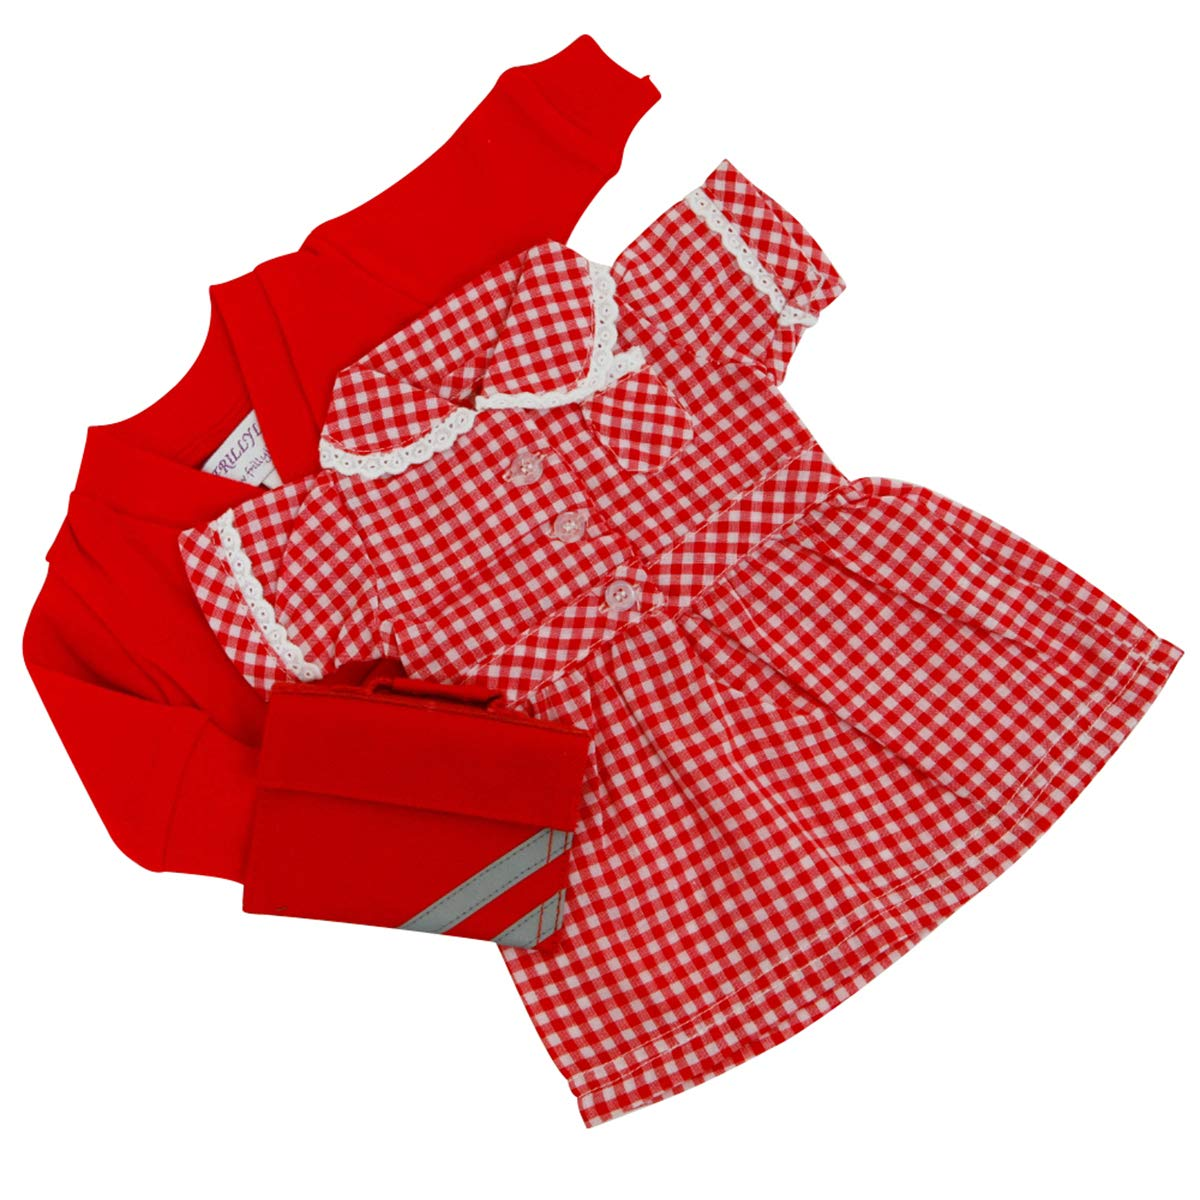 MEDIUM DOLLS SUMMER UNIFORM RED 18-20inch 45-50 cm DOLLS AND BEARS,TO FIT DOLLS SUCH AS BABY ANNABELL 46CM FRILLY LILY MED SUMMER UNIFORM DRESS/CARDY/BAG